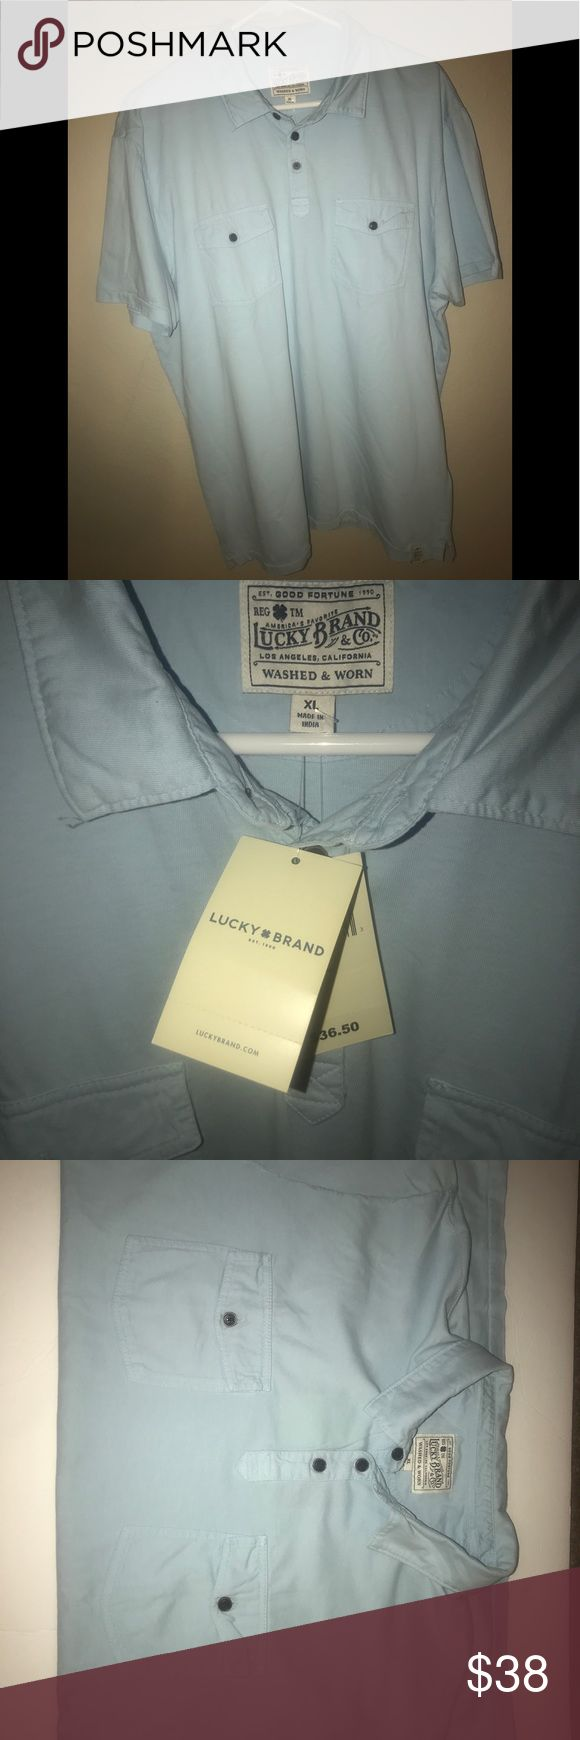 Men's short sleeve 3 button Lucky Brand Polo Shirt Men's light Blue Polo Lucky Brand Shirt. 2 front button pockets and 3 buttons at the collar. Great to wear for any occasion with shorts or jeans. Lucky Brand Shirts Polos